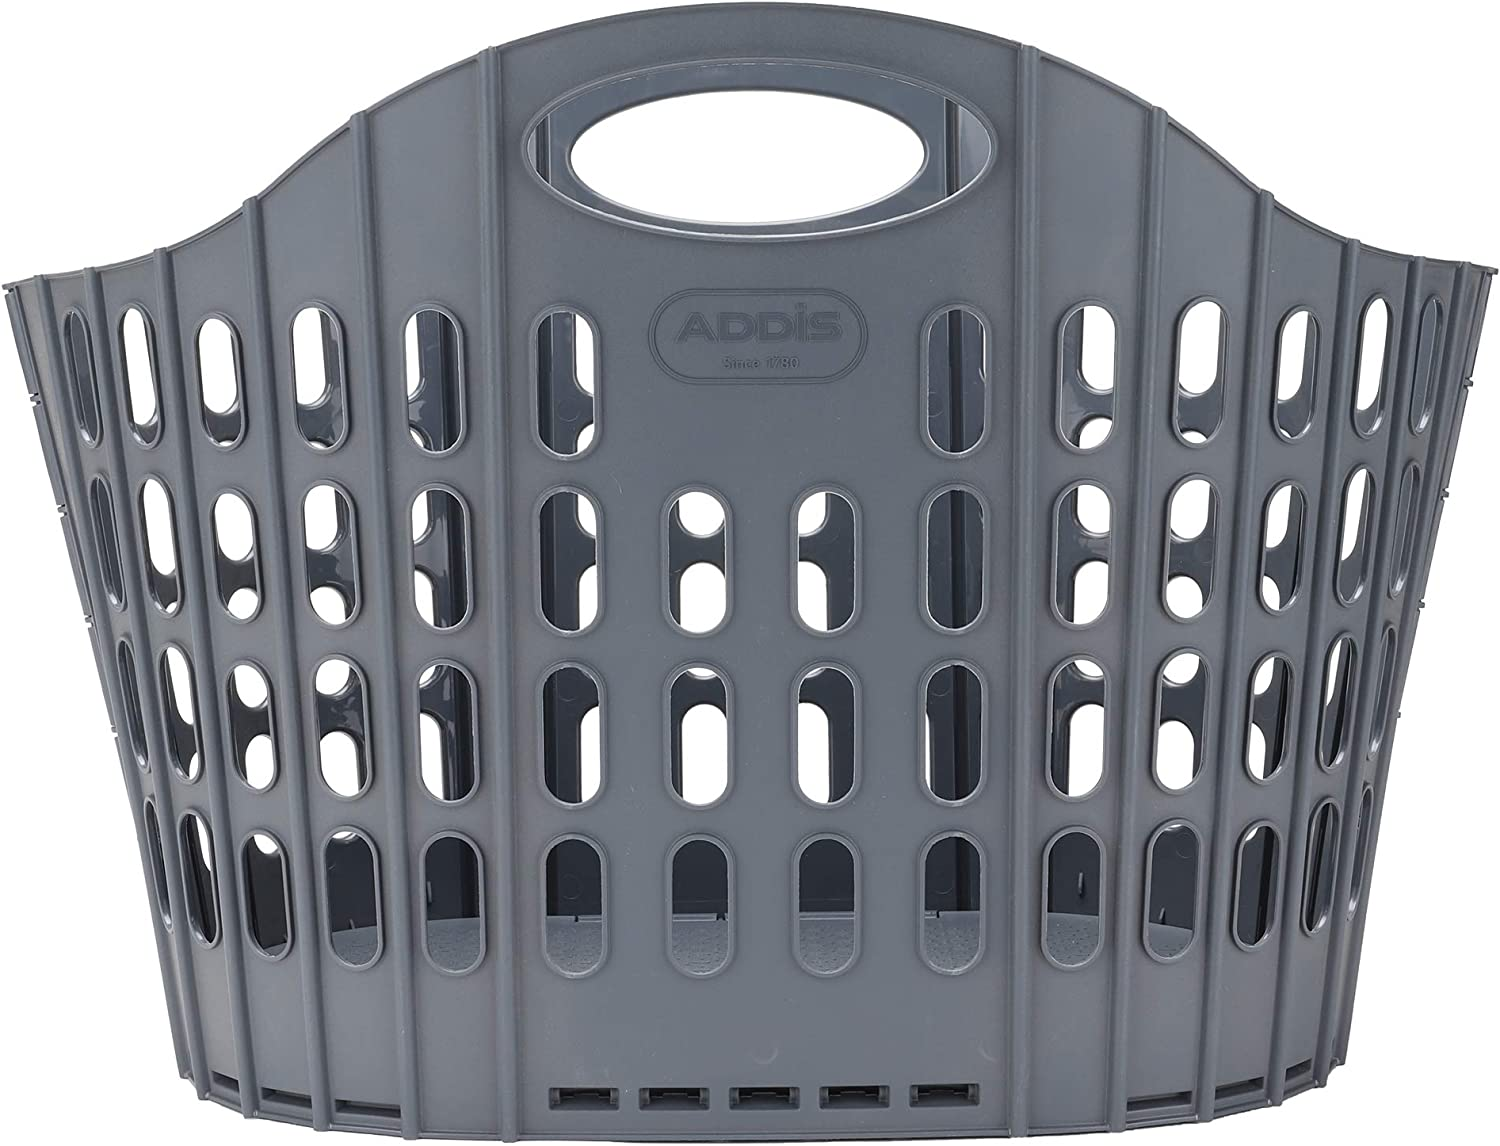 Mind Reader Collapsible Laundry 38 Liter/10 Gallon, Ventilated Plastic Hamper, Compact Clothes Basket, 38 L, Gray